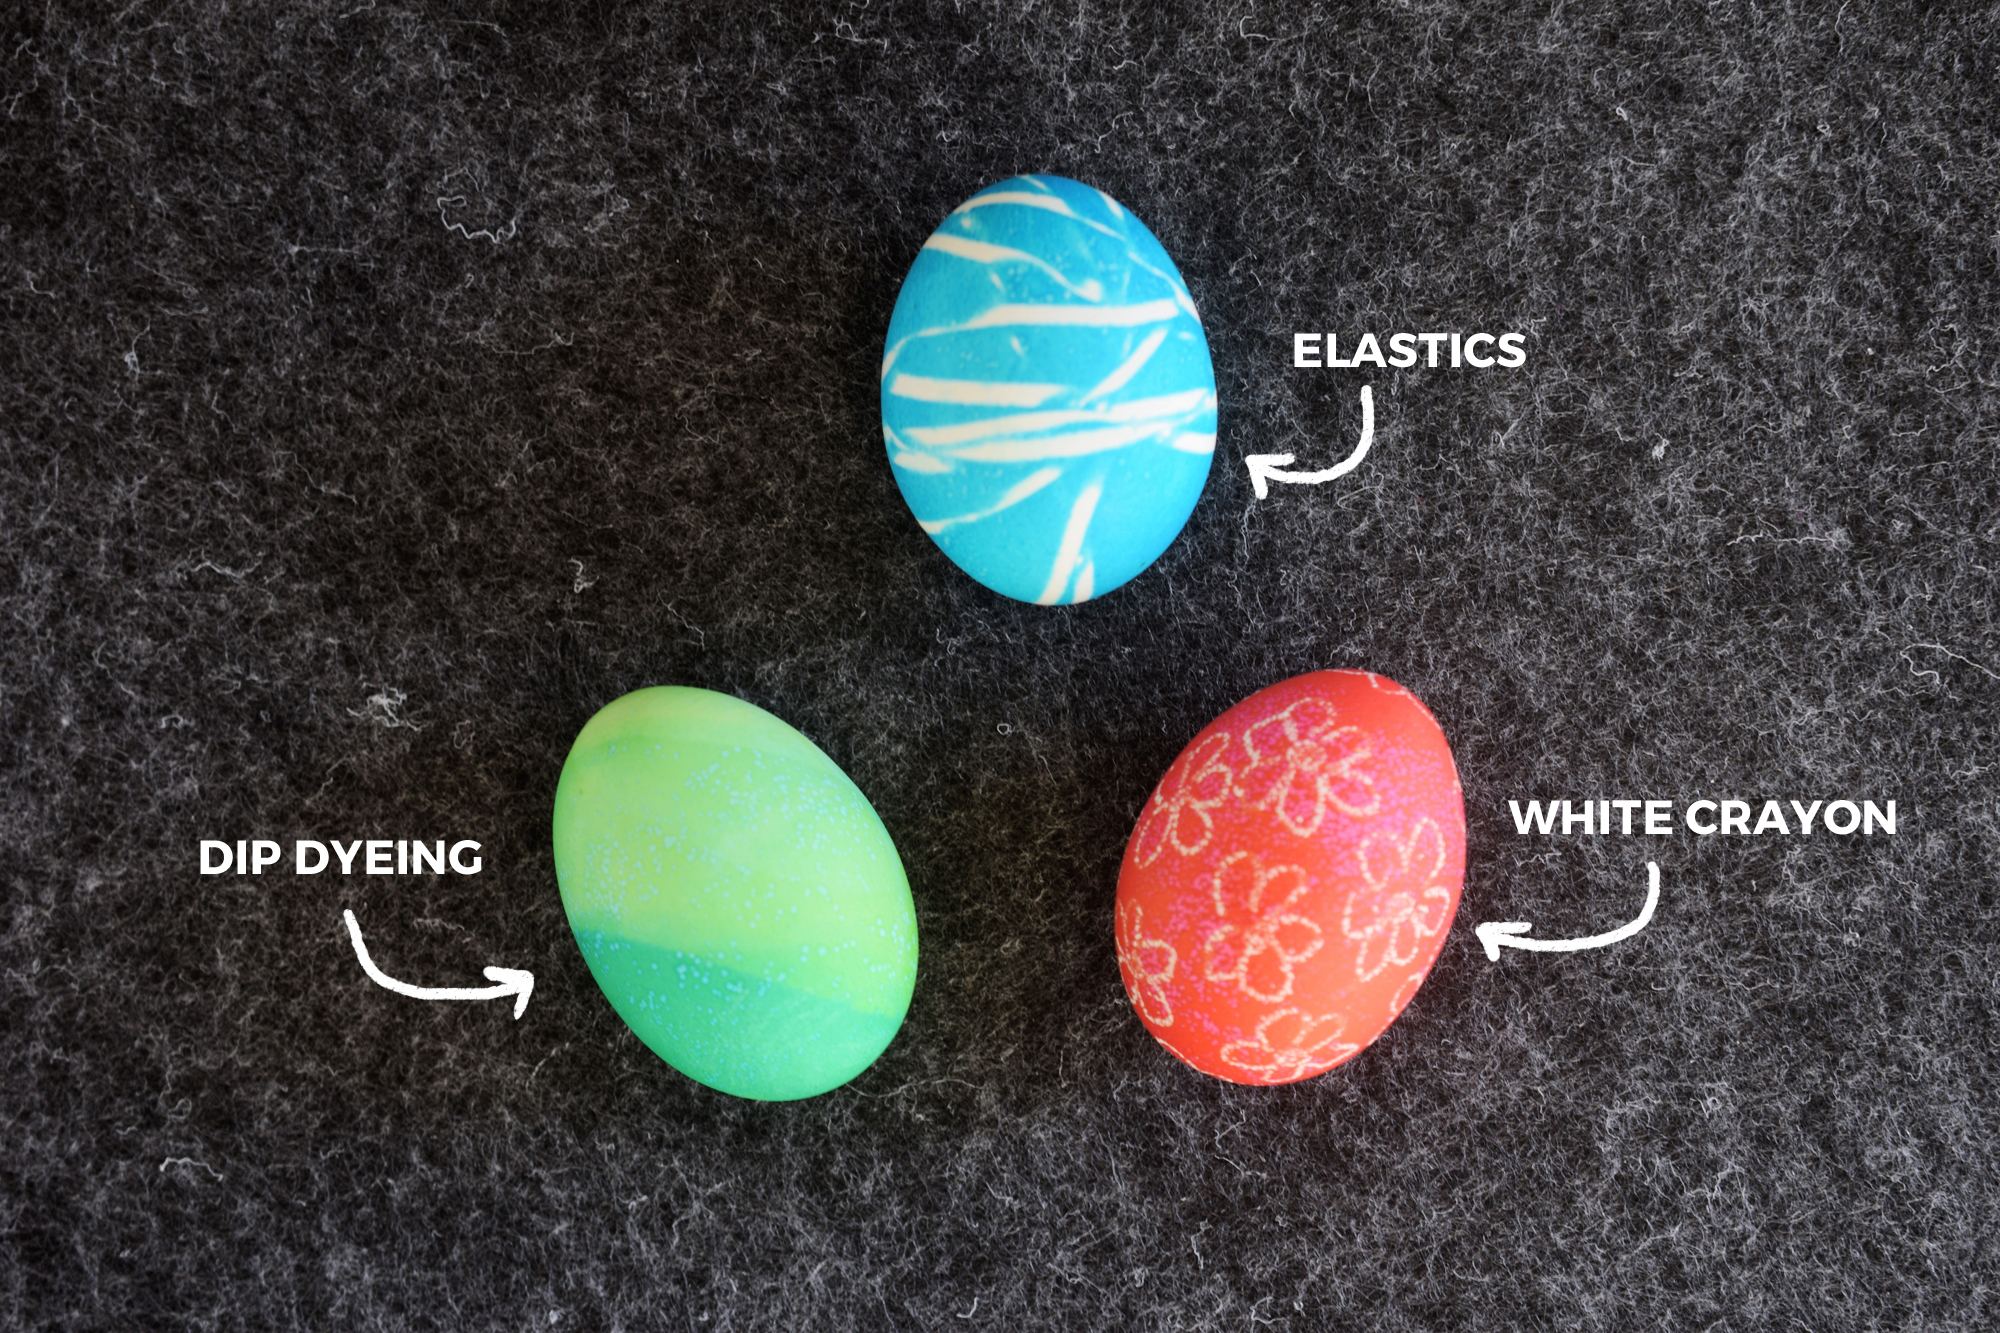 How To Dye Easter Eggs With Food Coloring - using elastics, crayons and stickers to make patterns